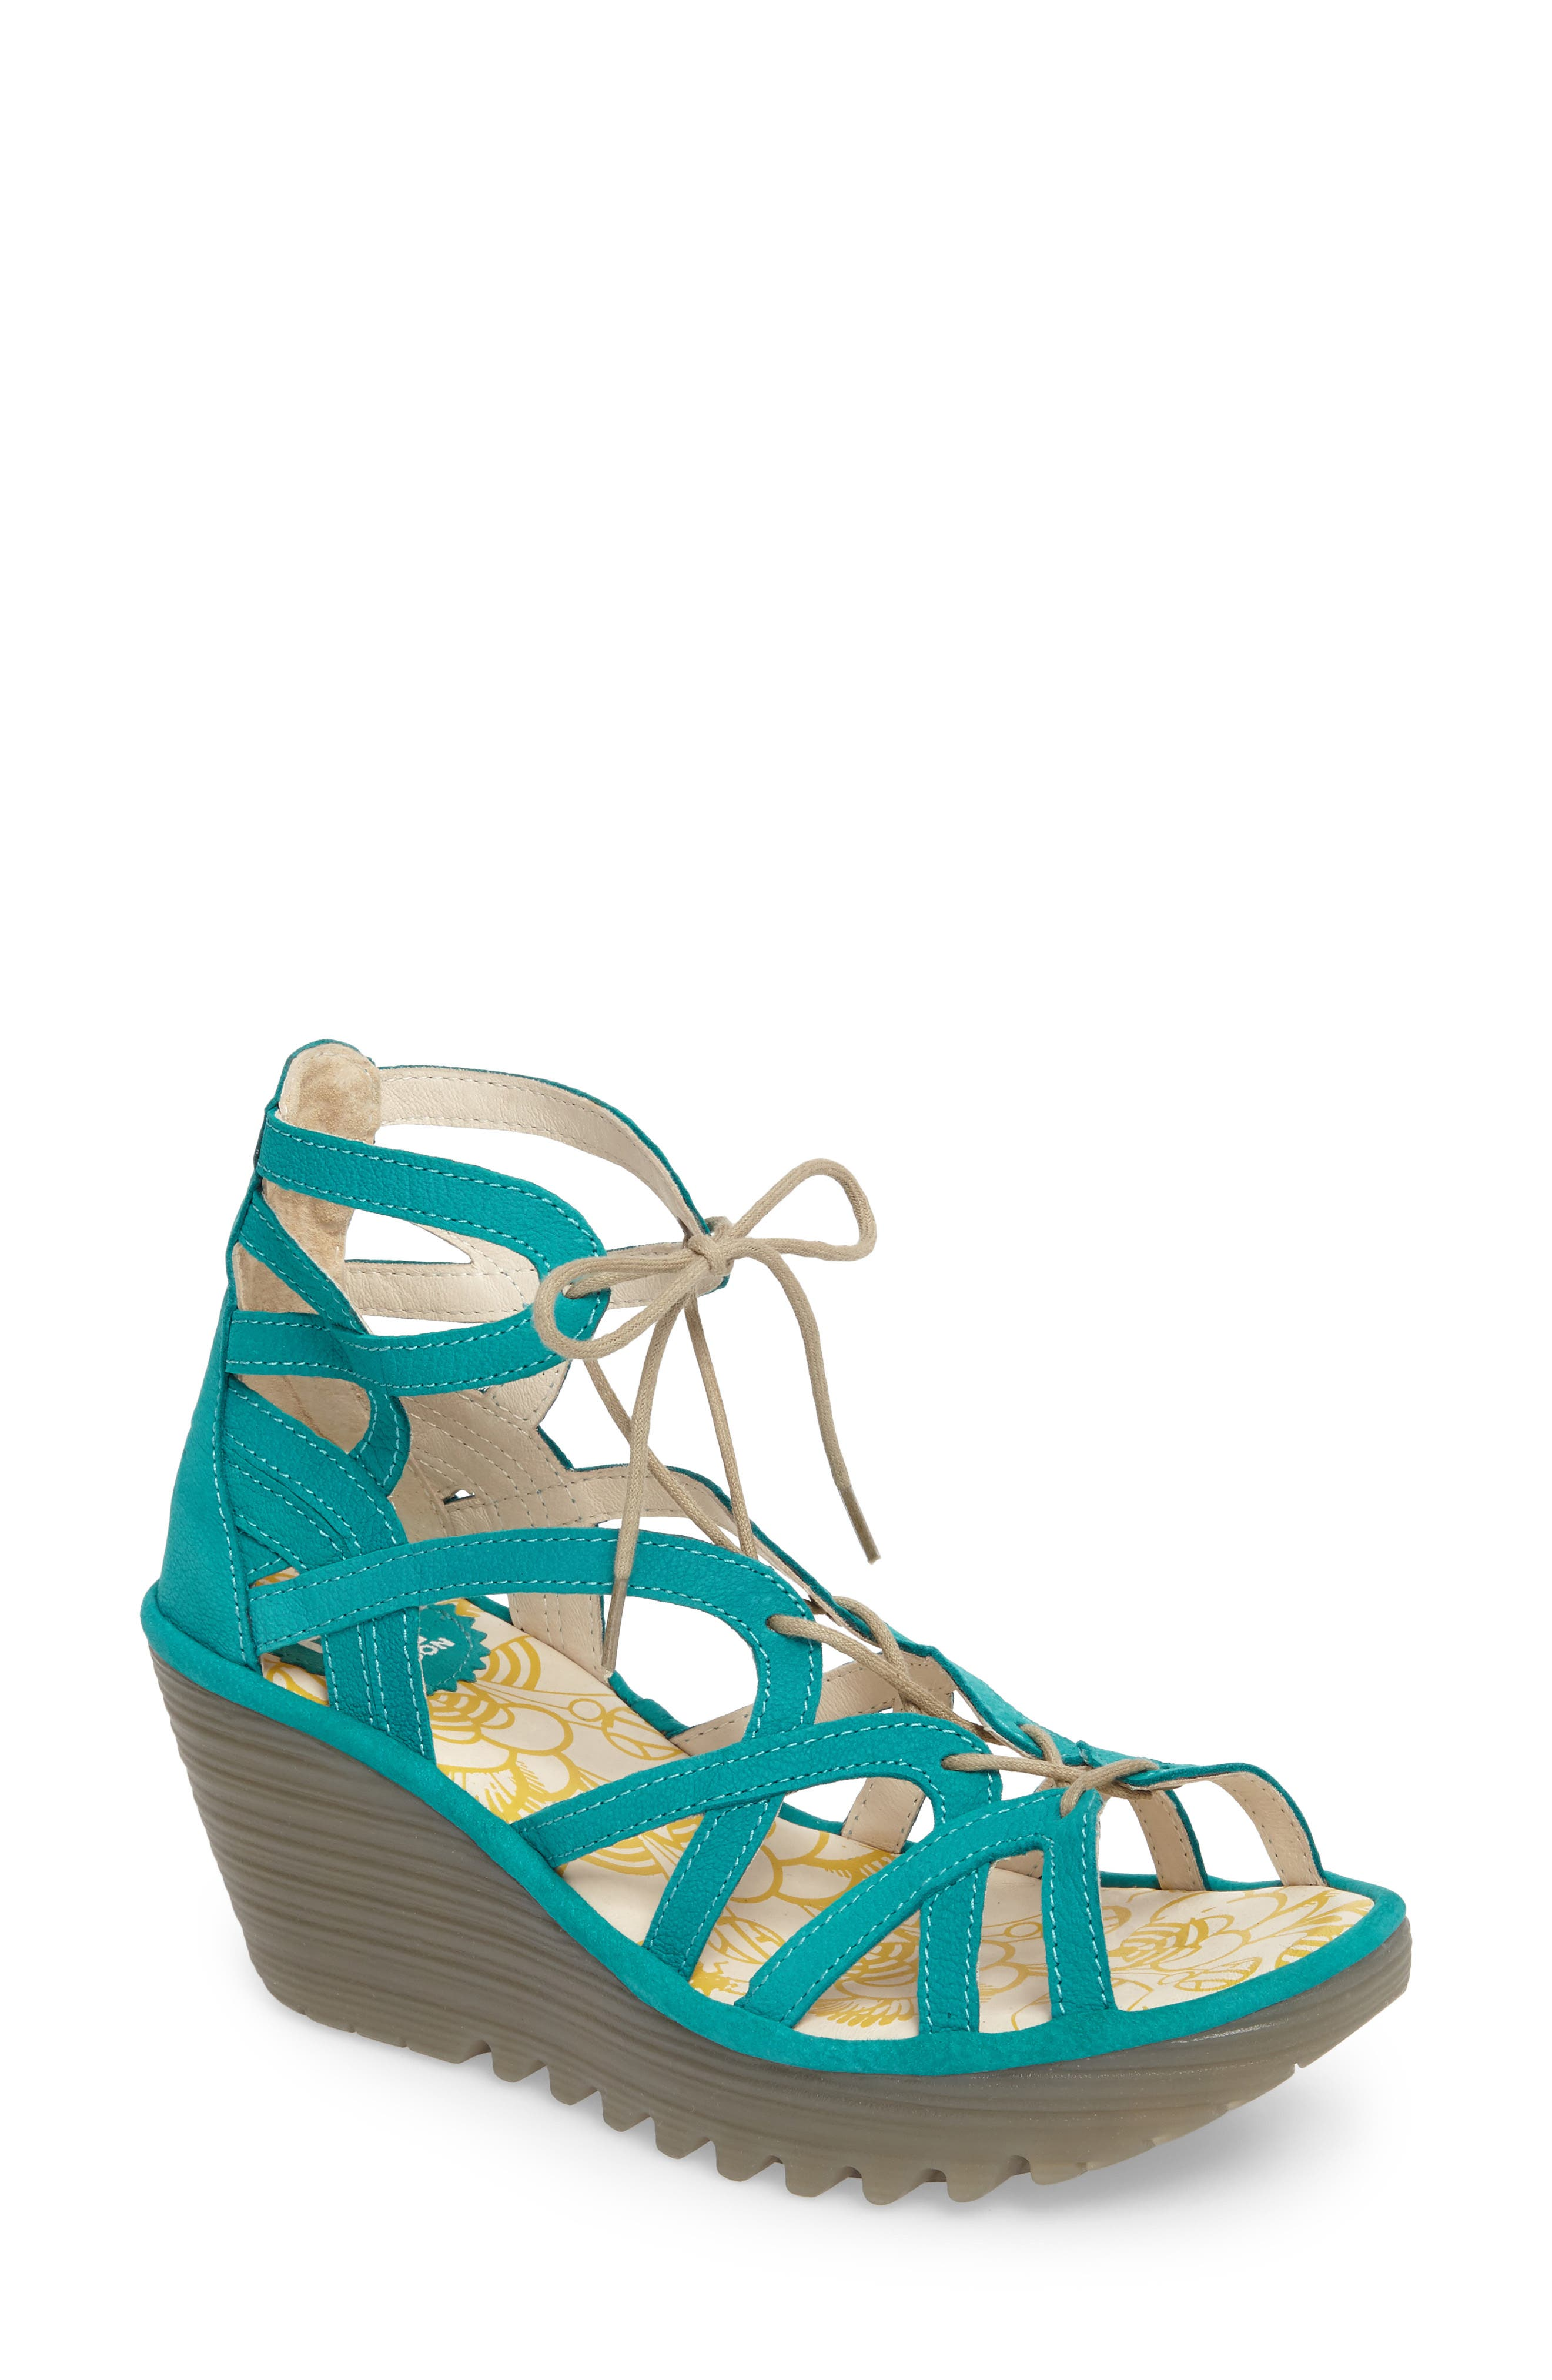 FLY LONDON 'Yuke' Platform Wedge Sandal, Main, color, VERDIGRIS LEATHER